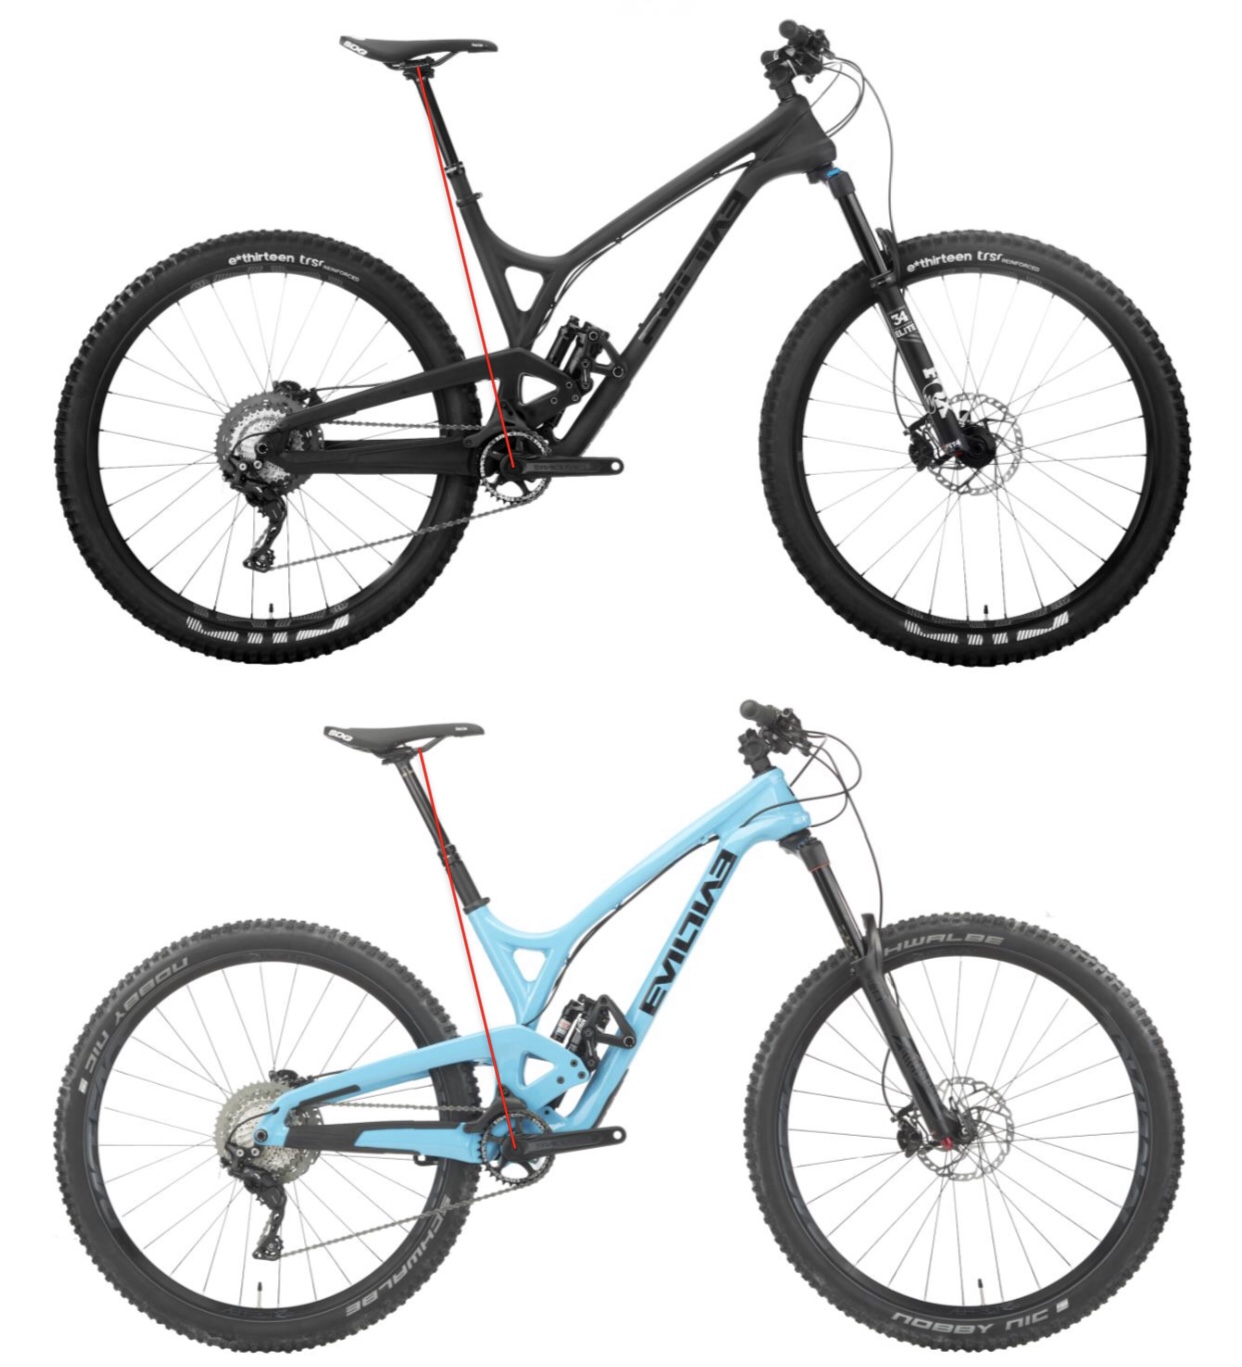 782ffb245be The steepening vs the slackening sta comparison. I lined up the front and  rear of the back wheel to scale the bikes. I traced the Offering effective  sta, ...